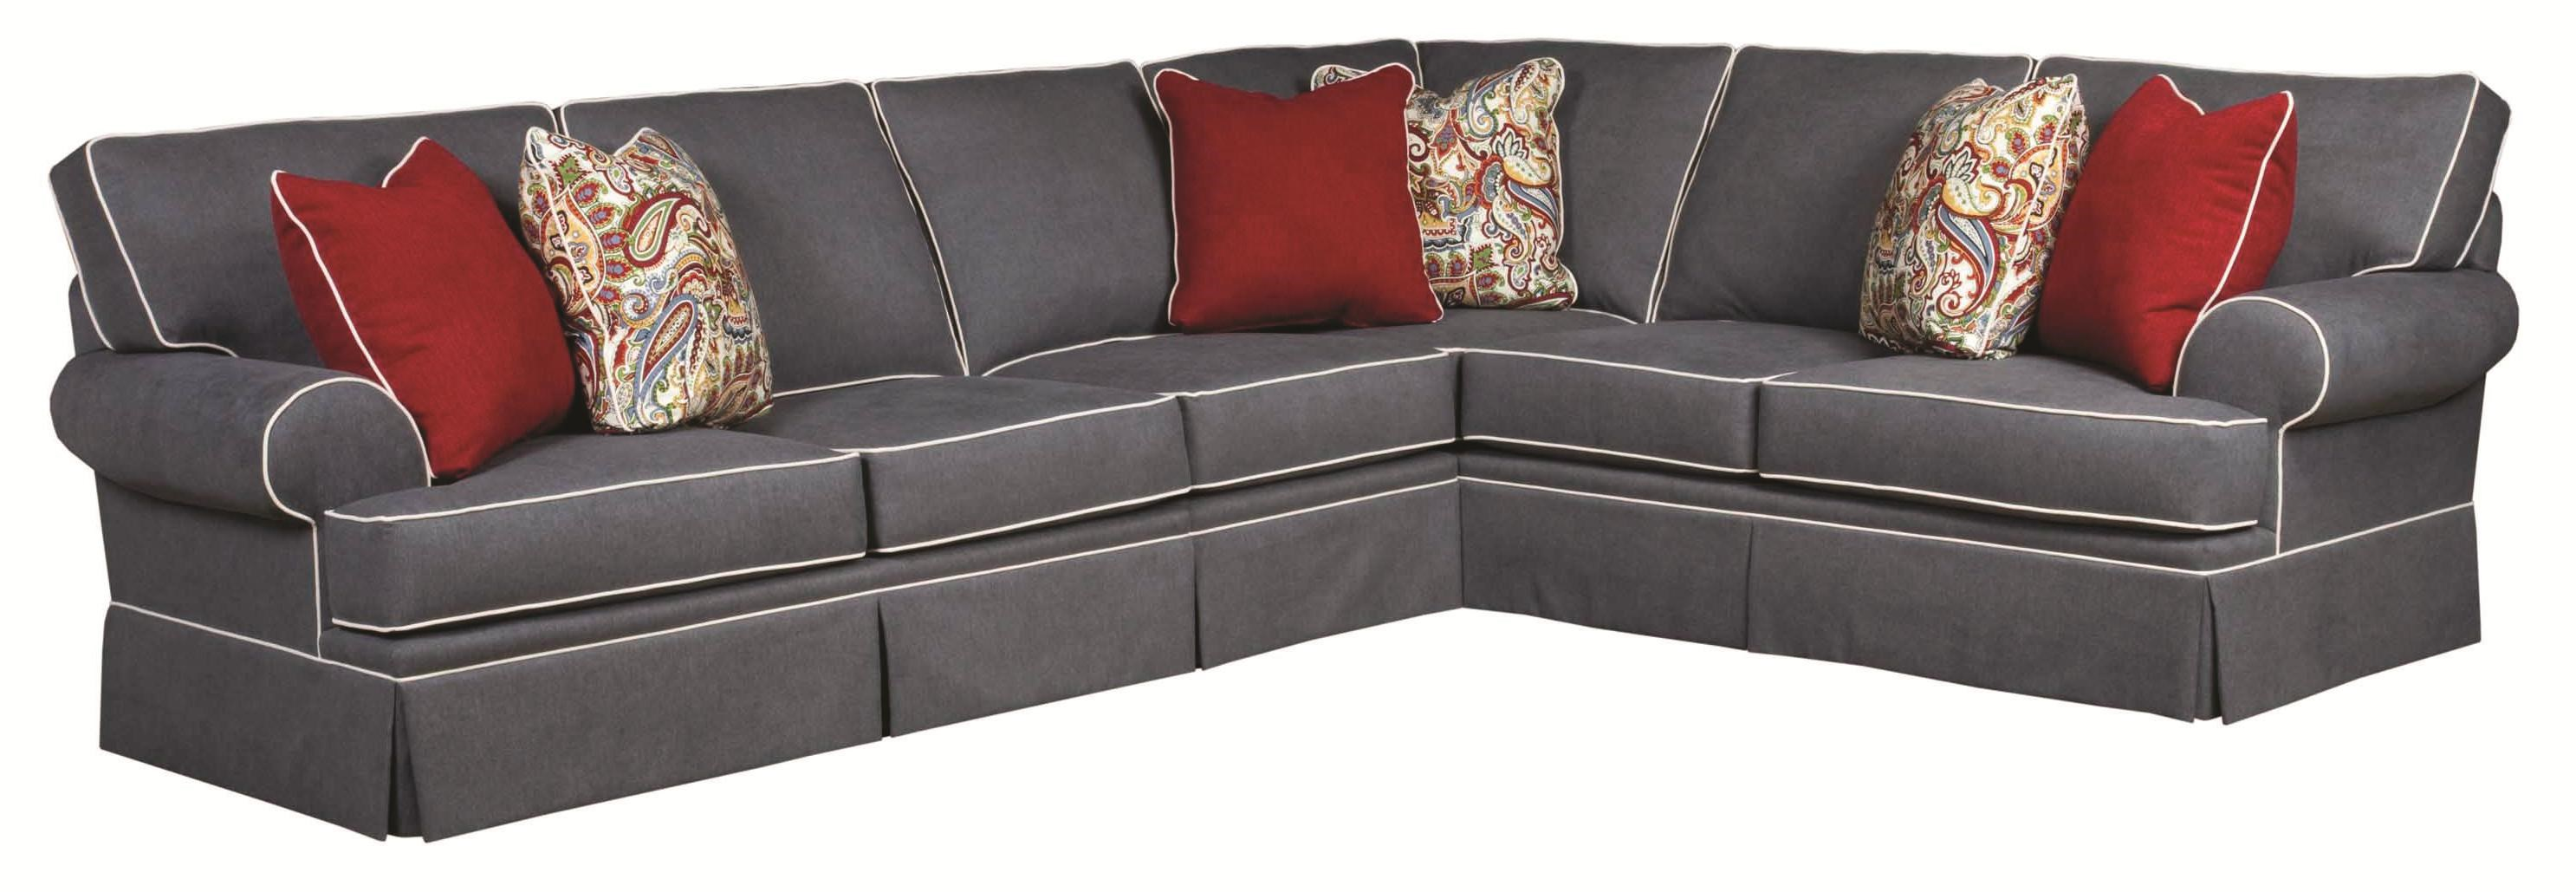 Broyhill Furniture Emily Traditional 3 Piece Sectional Sofa With Skirted  Base